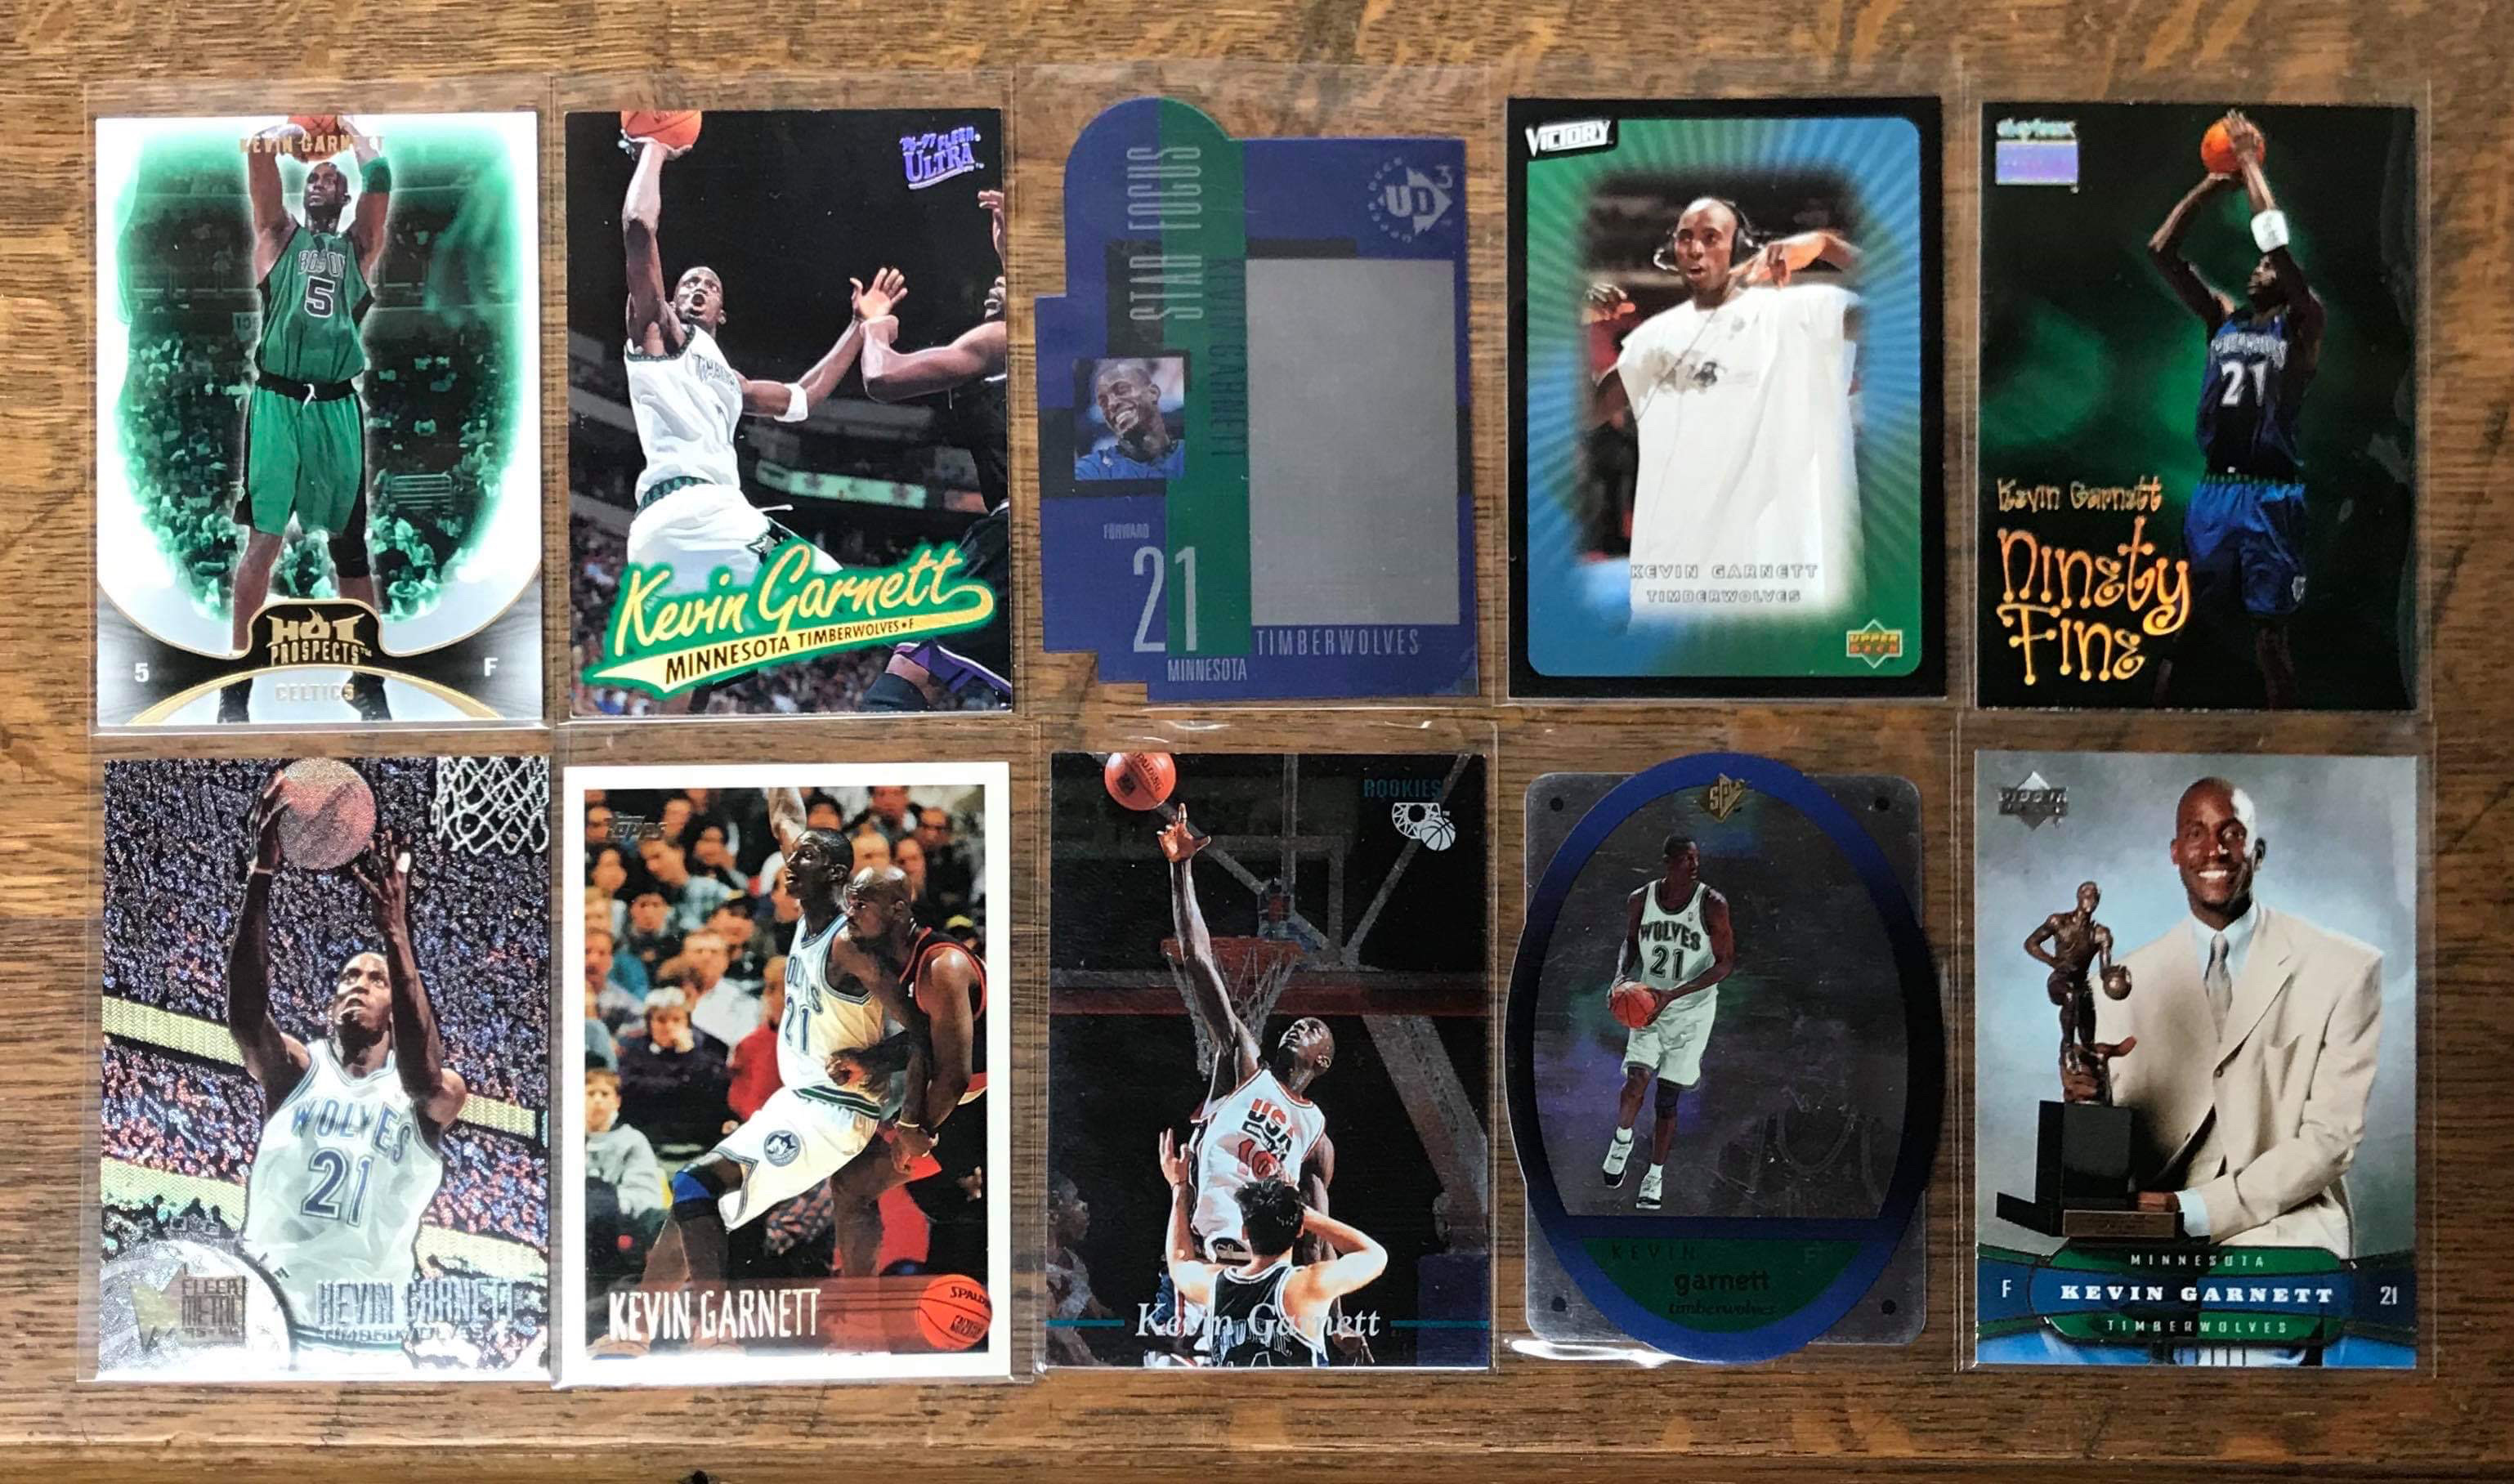 10 - Kevin Garnett Cards donated by Justin Skjerven